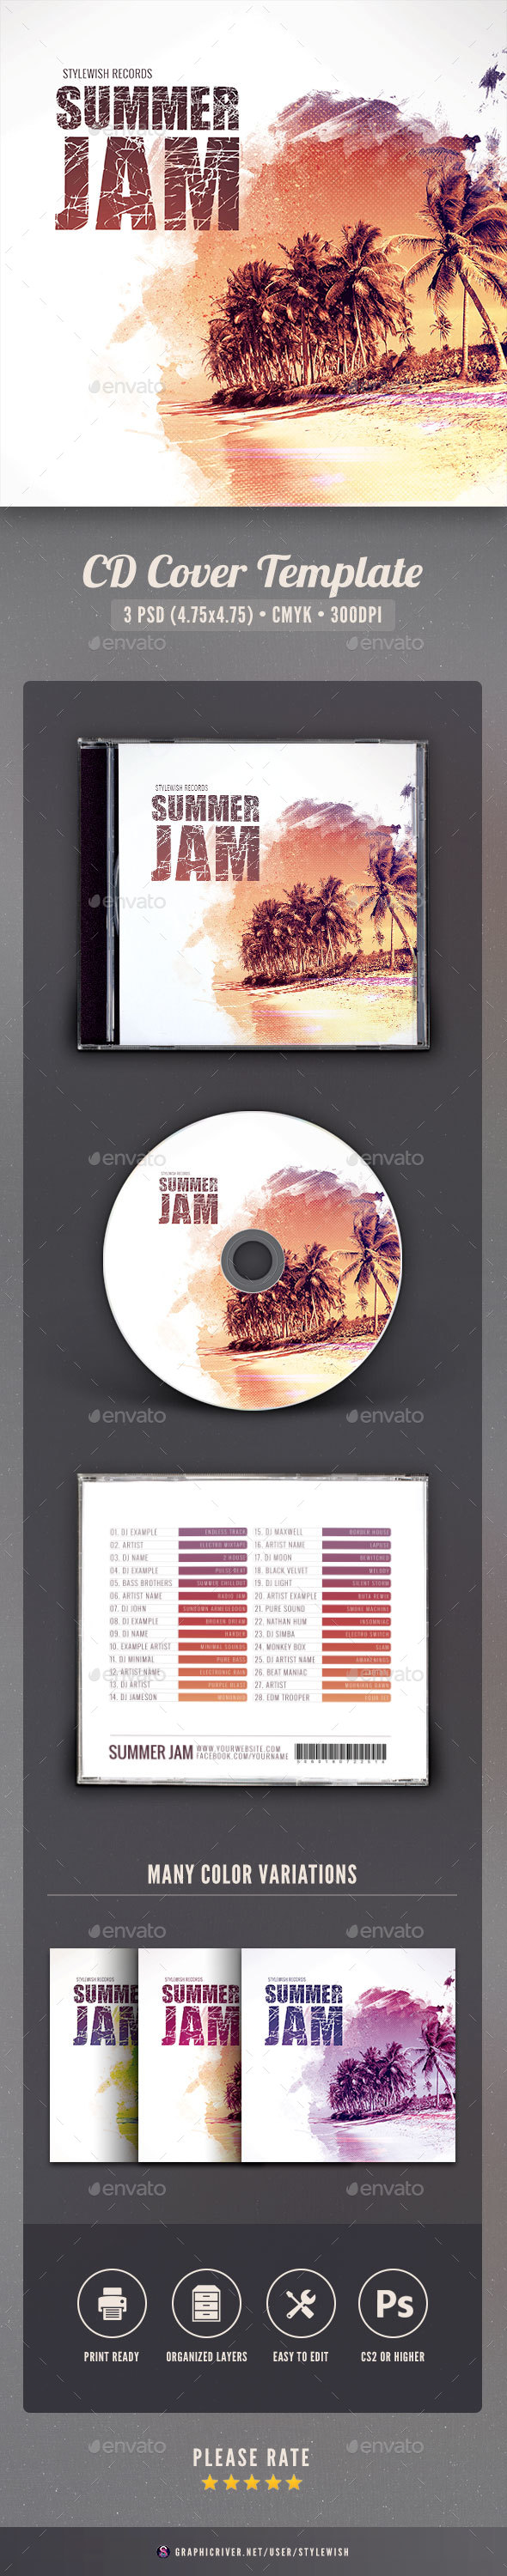 Summer Jam CD Cover Artwork - CD & DVD Artwork Print Templates